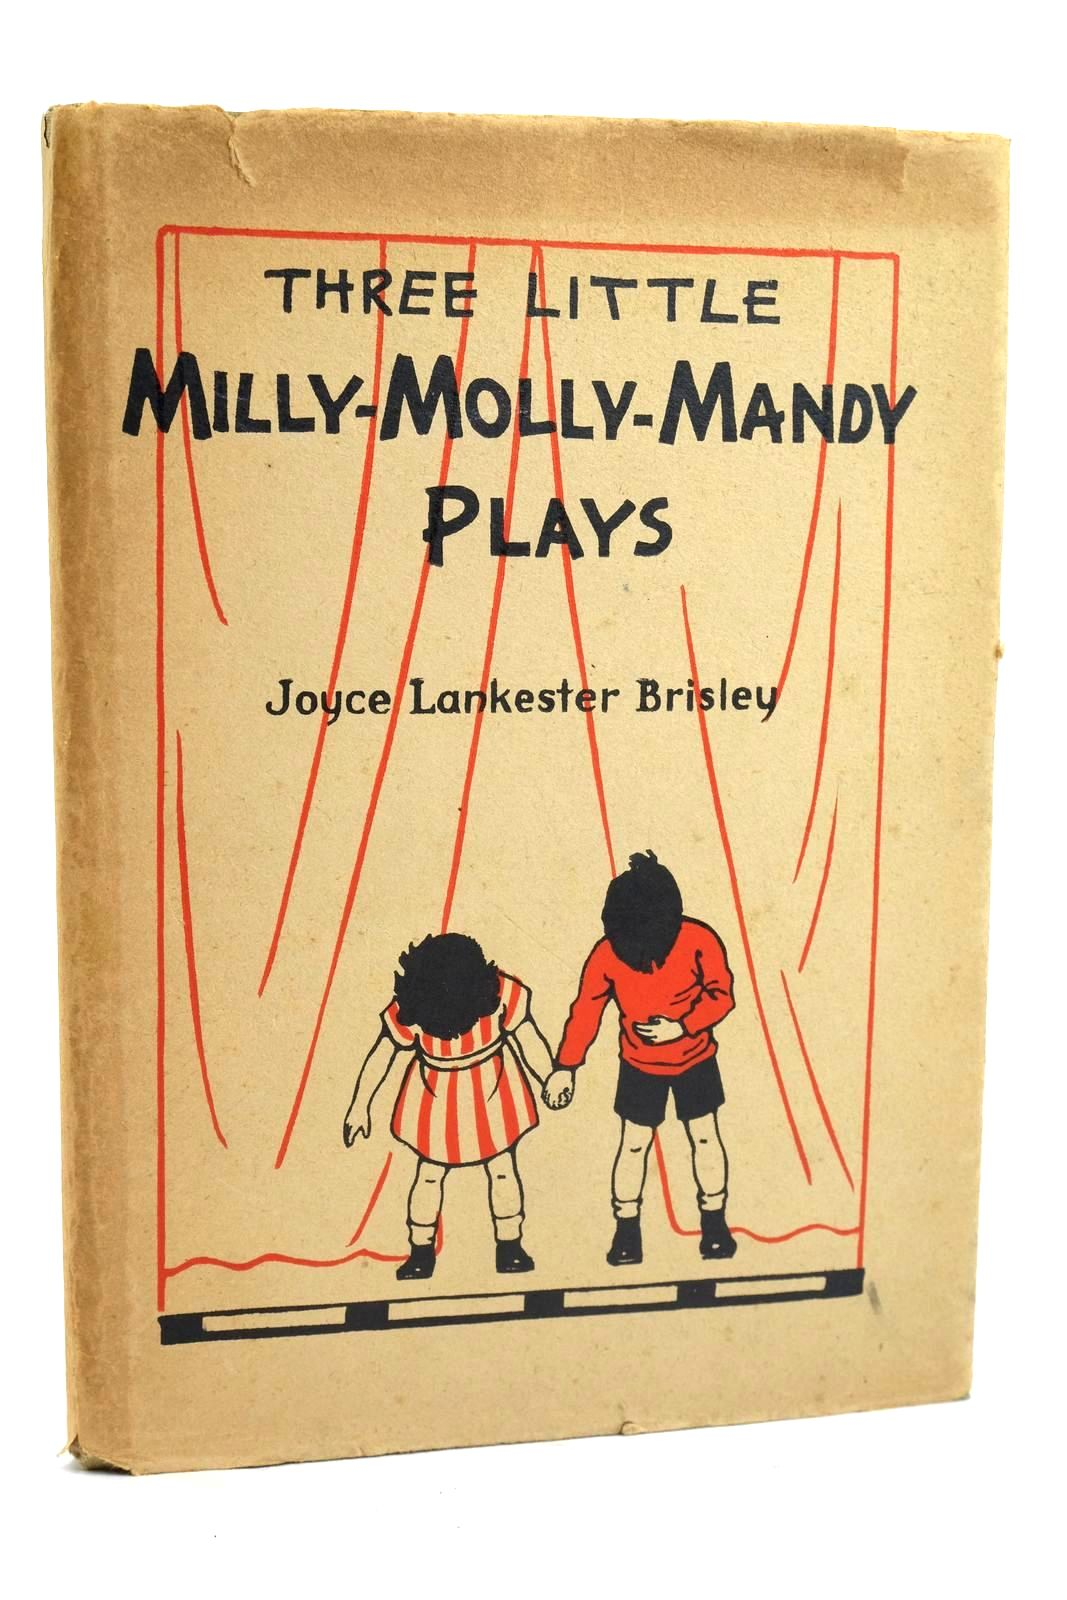 Photo of THREE LITTLE MILLY-MOLLY-MANDY PLAYS FOR CHILDREN written by Brisley, Joyce Lankester illustrated by Brisley, Joyce Lankester published by George G. Harrap & Co. Ltd. (STOCK CODE: 1319752)  for sale by Stella & Rose's Books